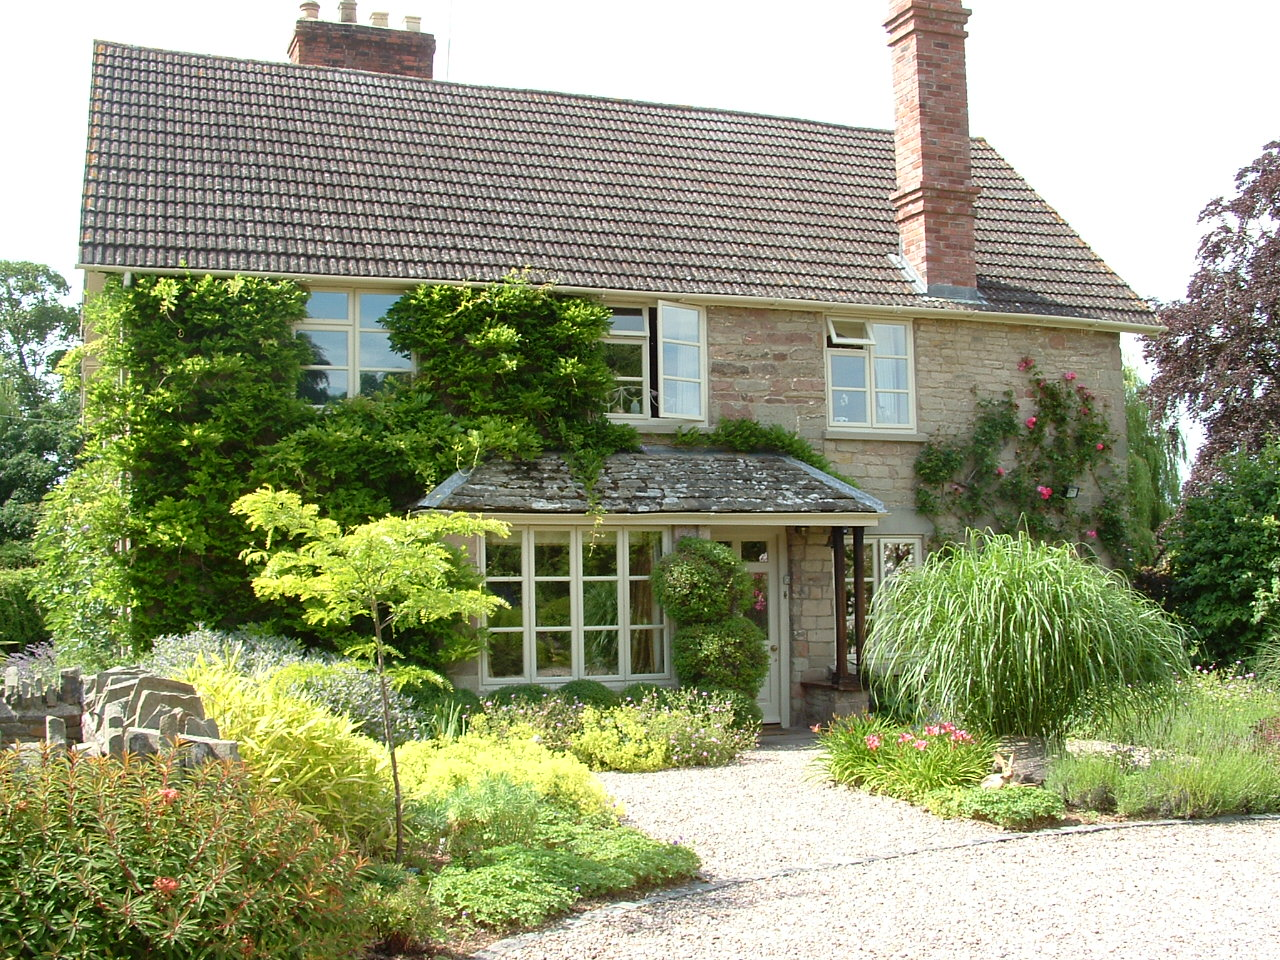 The front garden of a stone cottage covered in climbers and framed by architectural planting